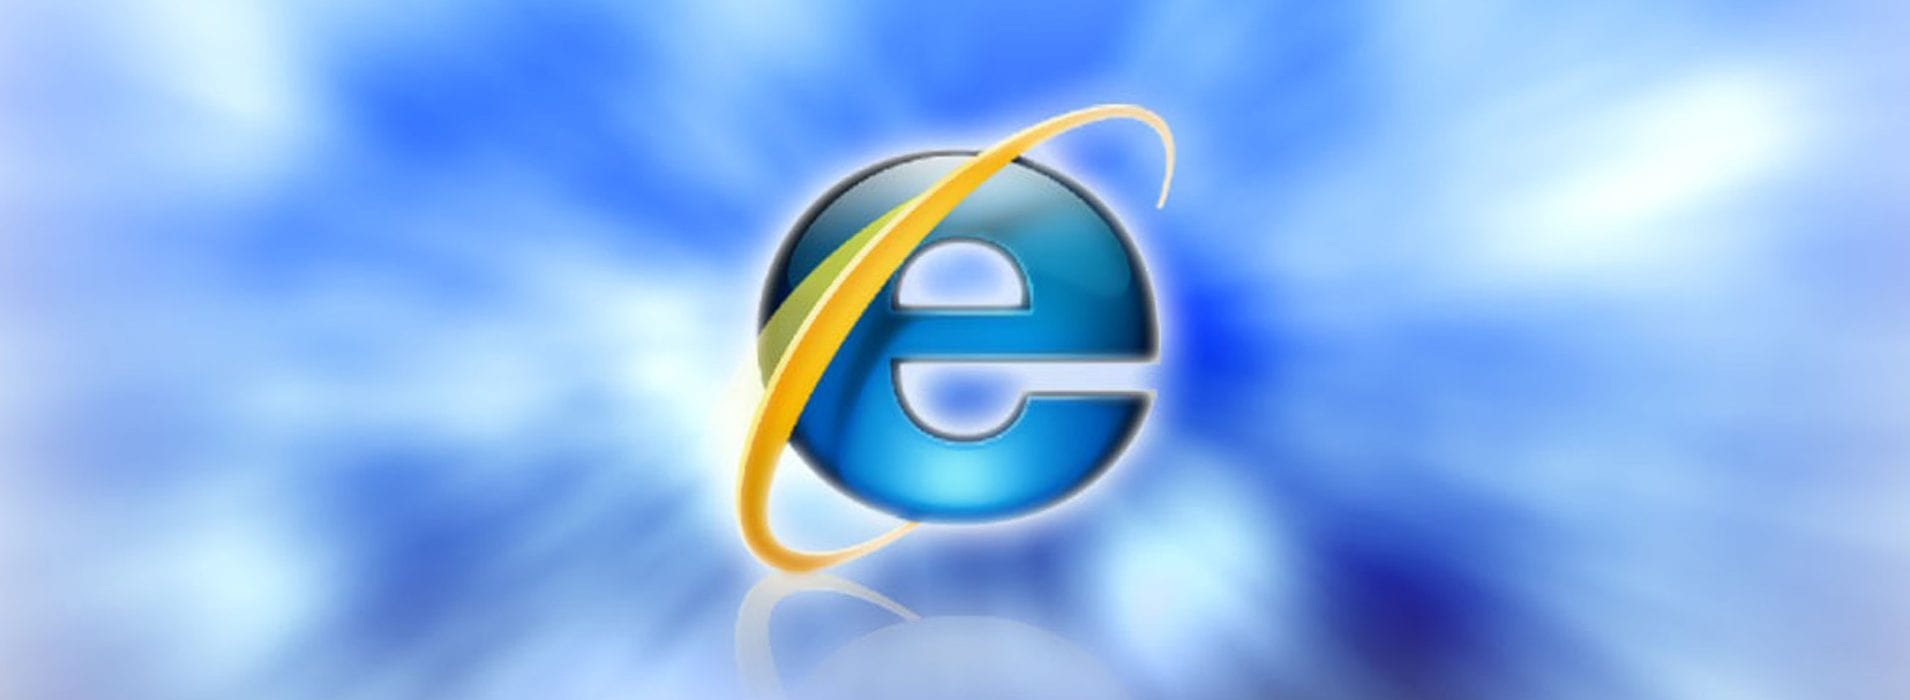 Windows 11 Is Removing The Legacy Internet Explorer After So Long